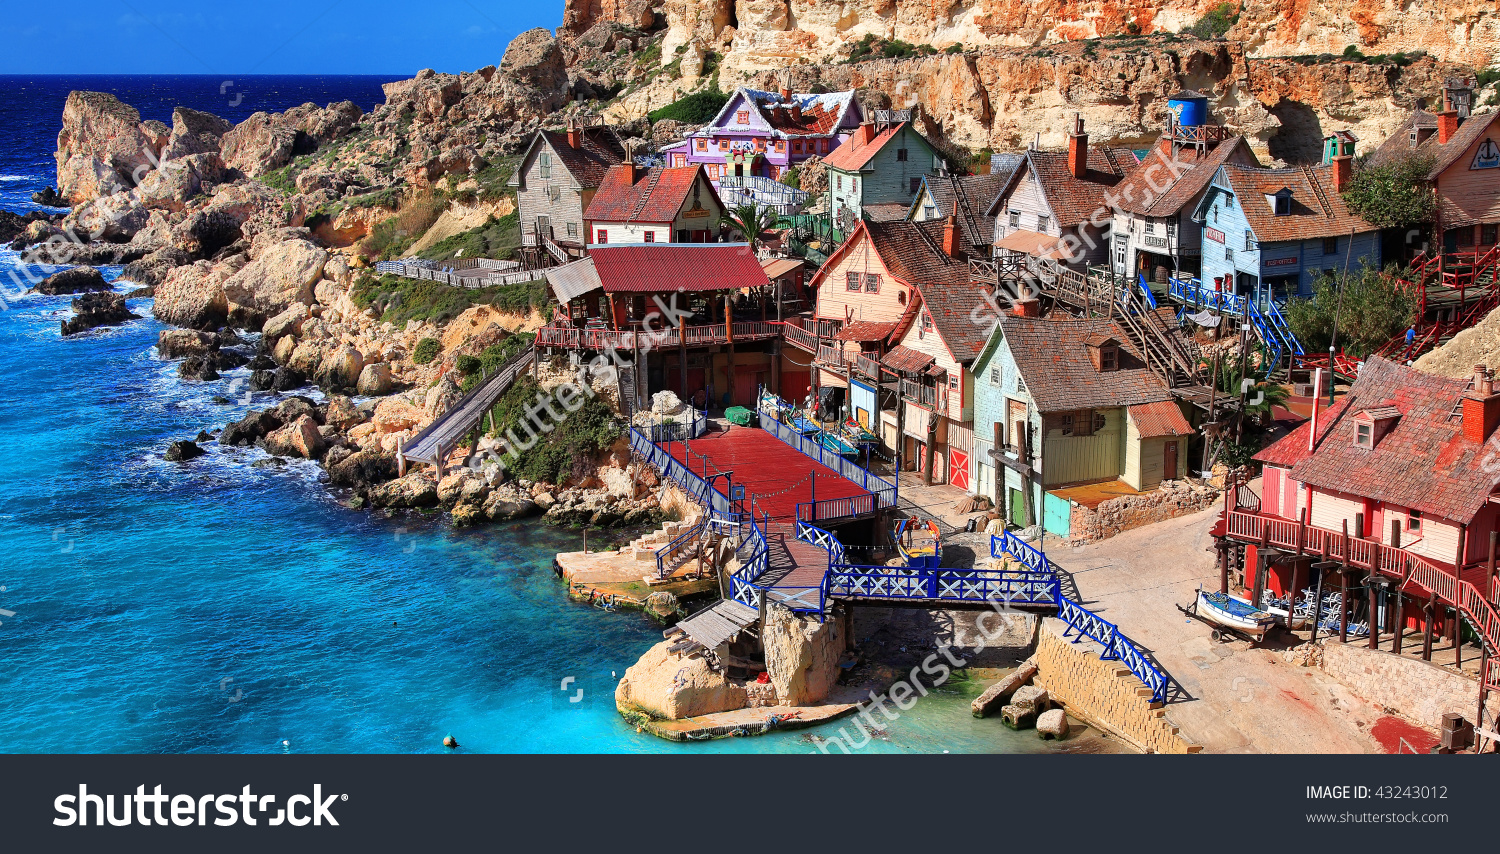 Popeye Village Stock Photo 43243012.